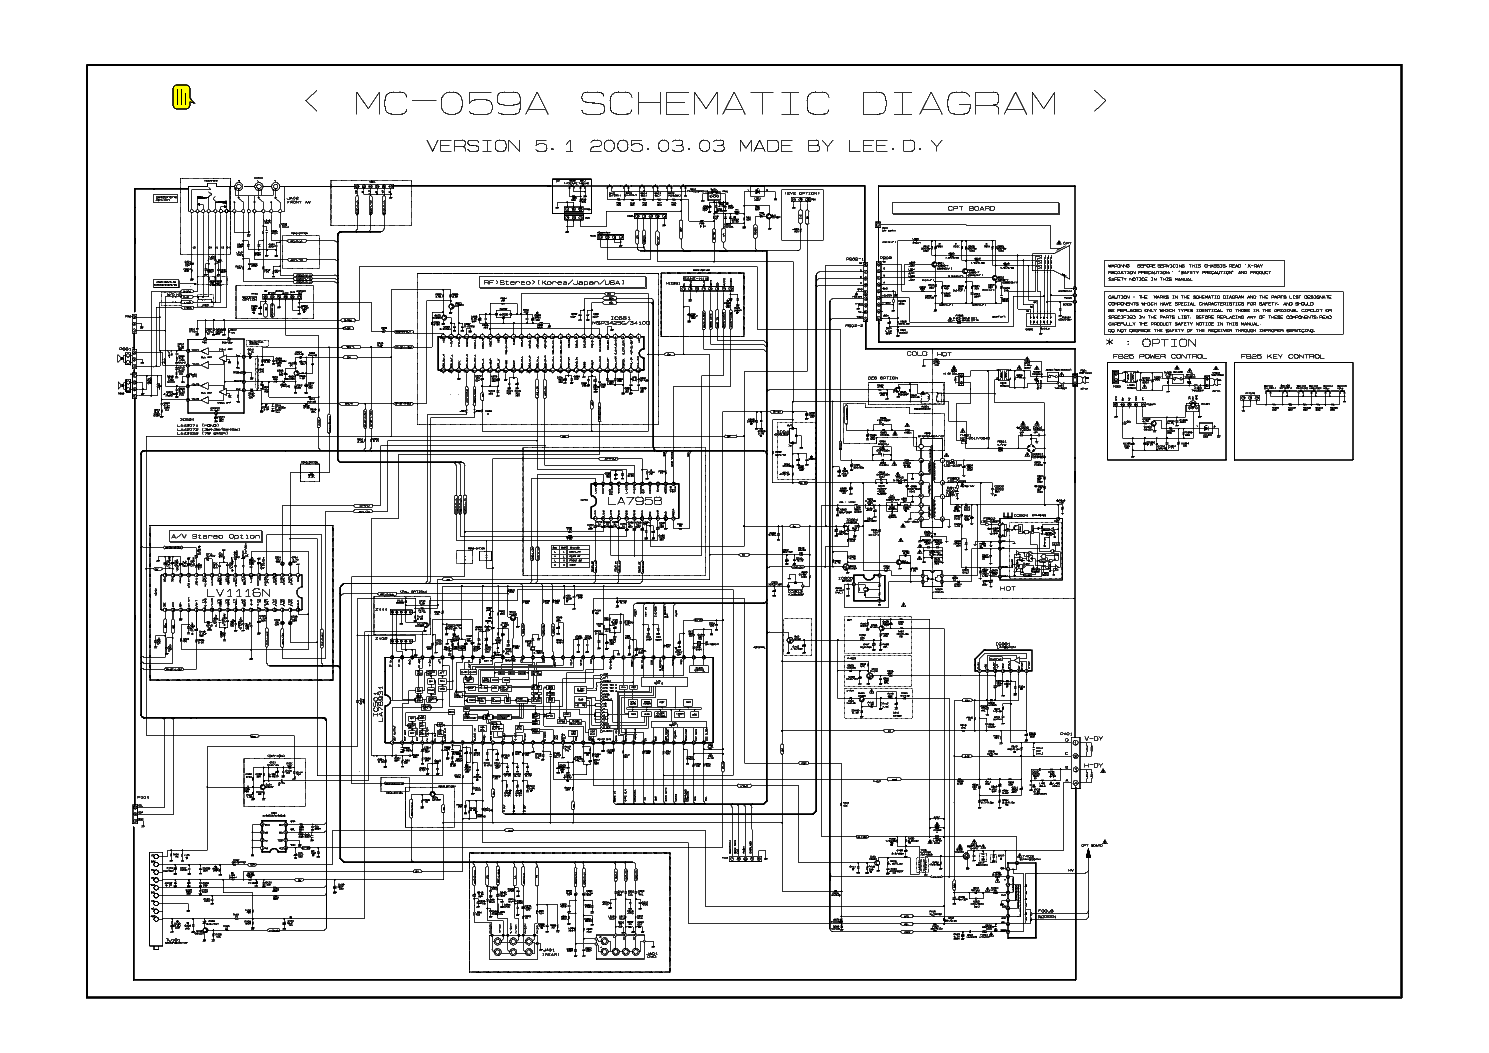 Wiring Diagram Lg Tv Good Guide Of Smps Schematic Get Free Image About For Diagrams 42lv5400 90 Sony Excd